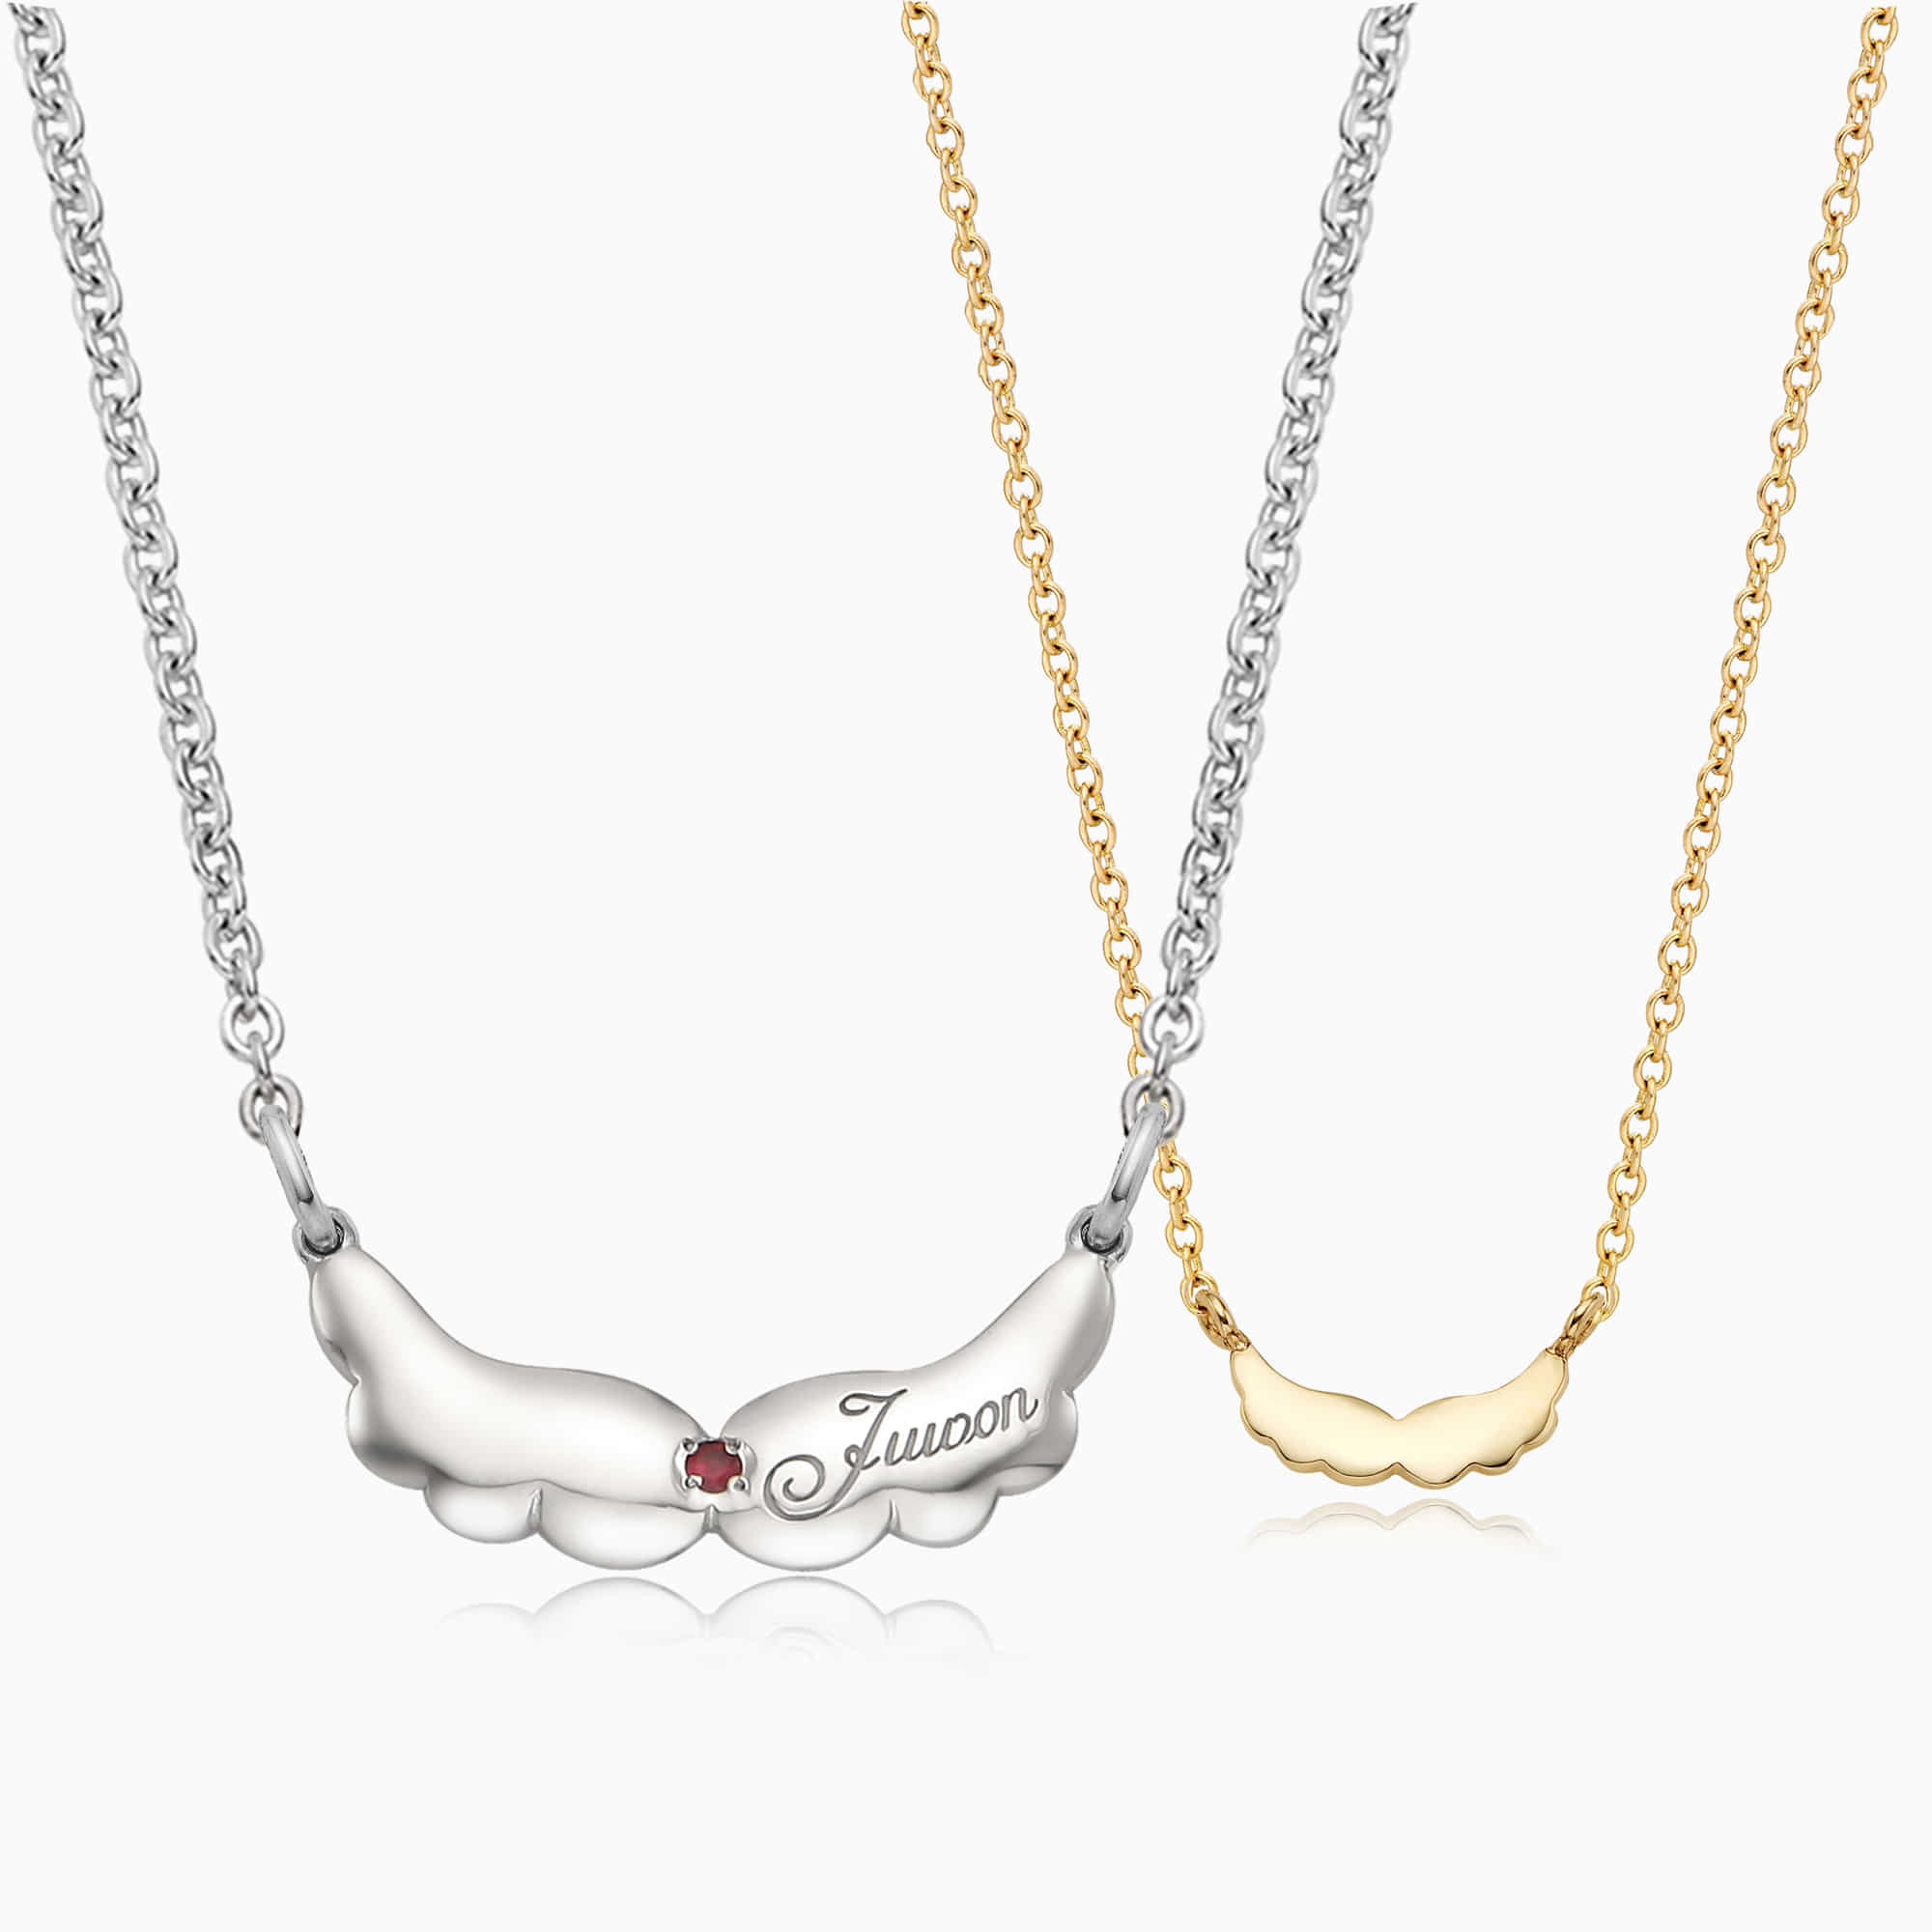 [With My Child] Silver/14K/18K Angel Wings Necklace